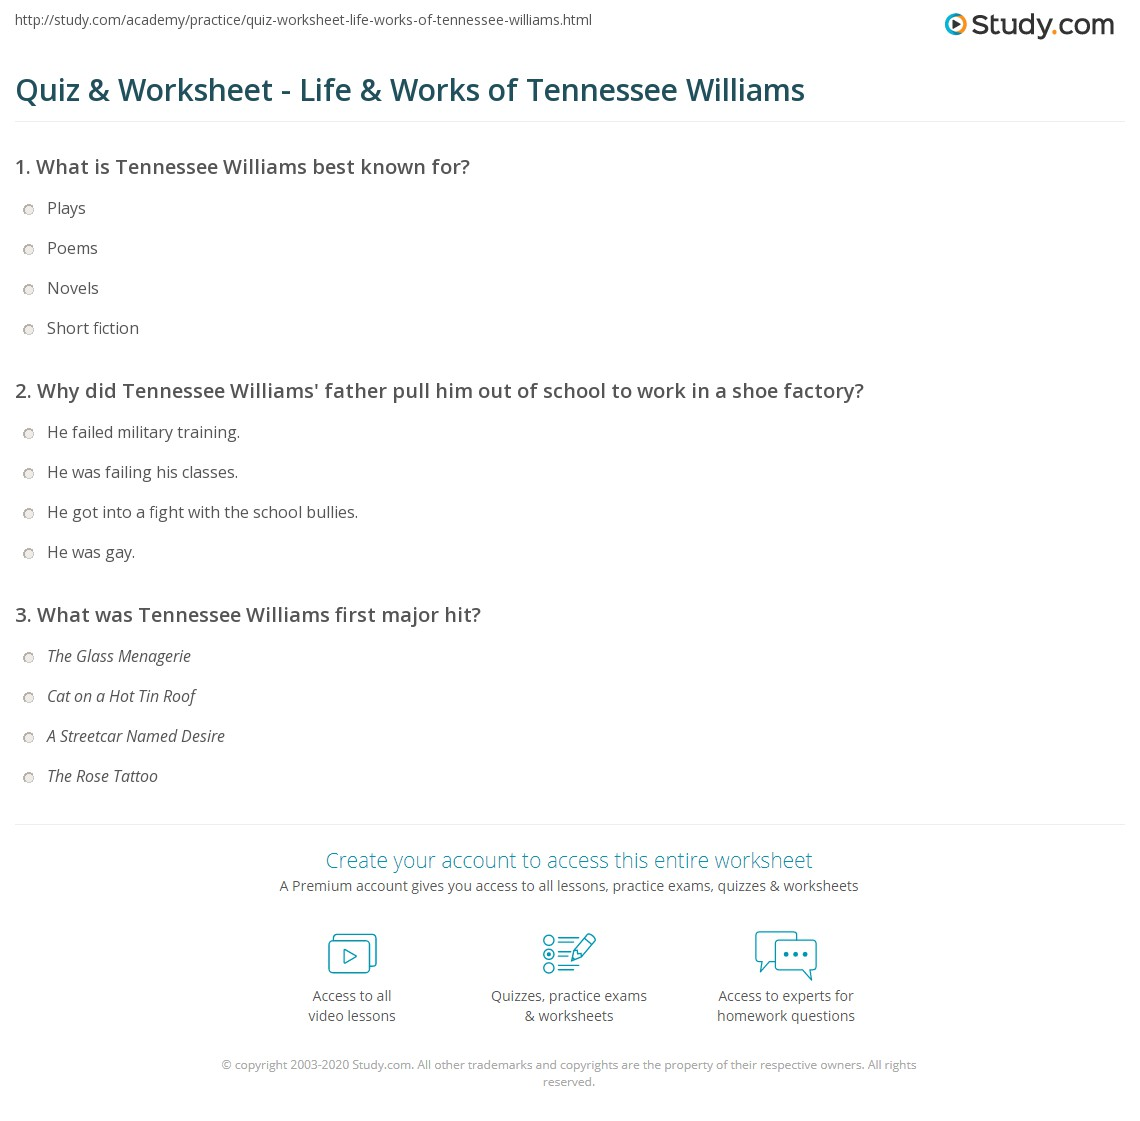 quiz worksheet life works of tennessee williams com already registered login here for access